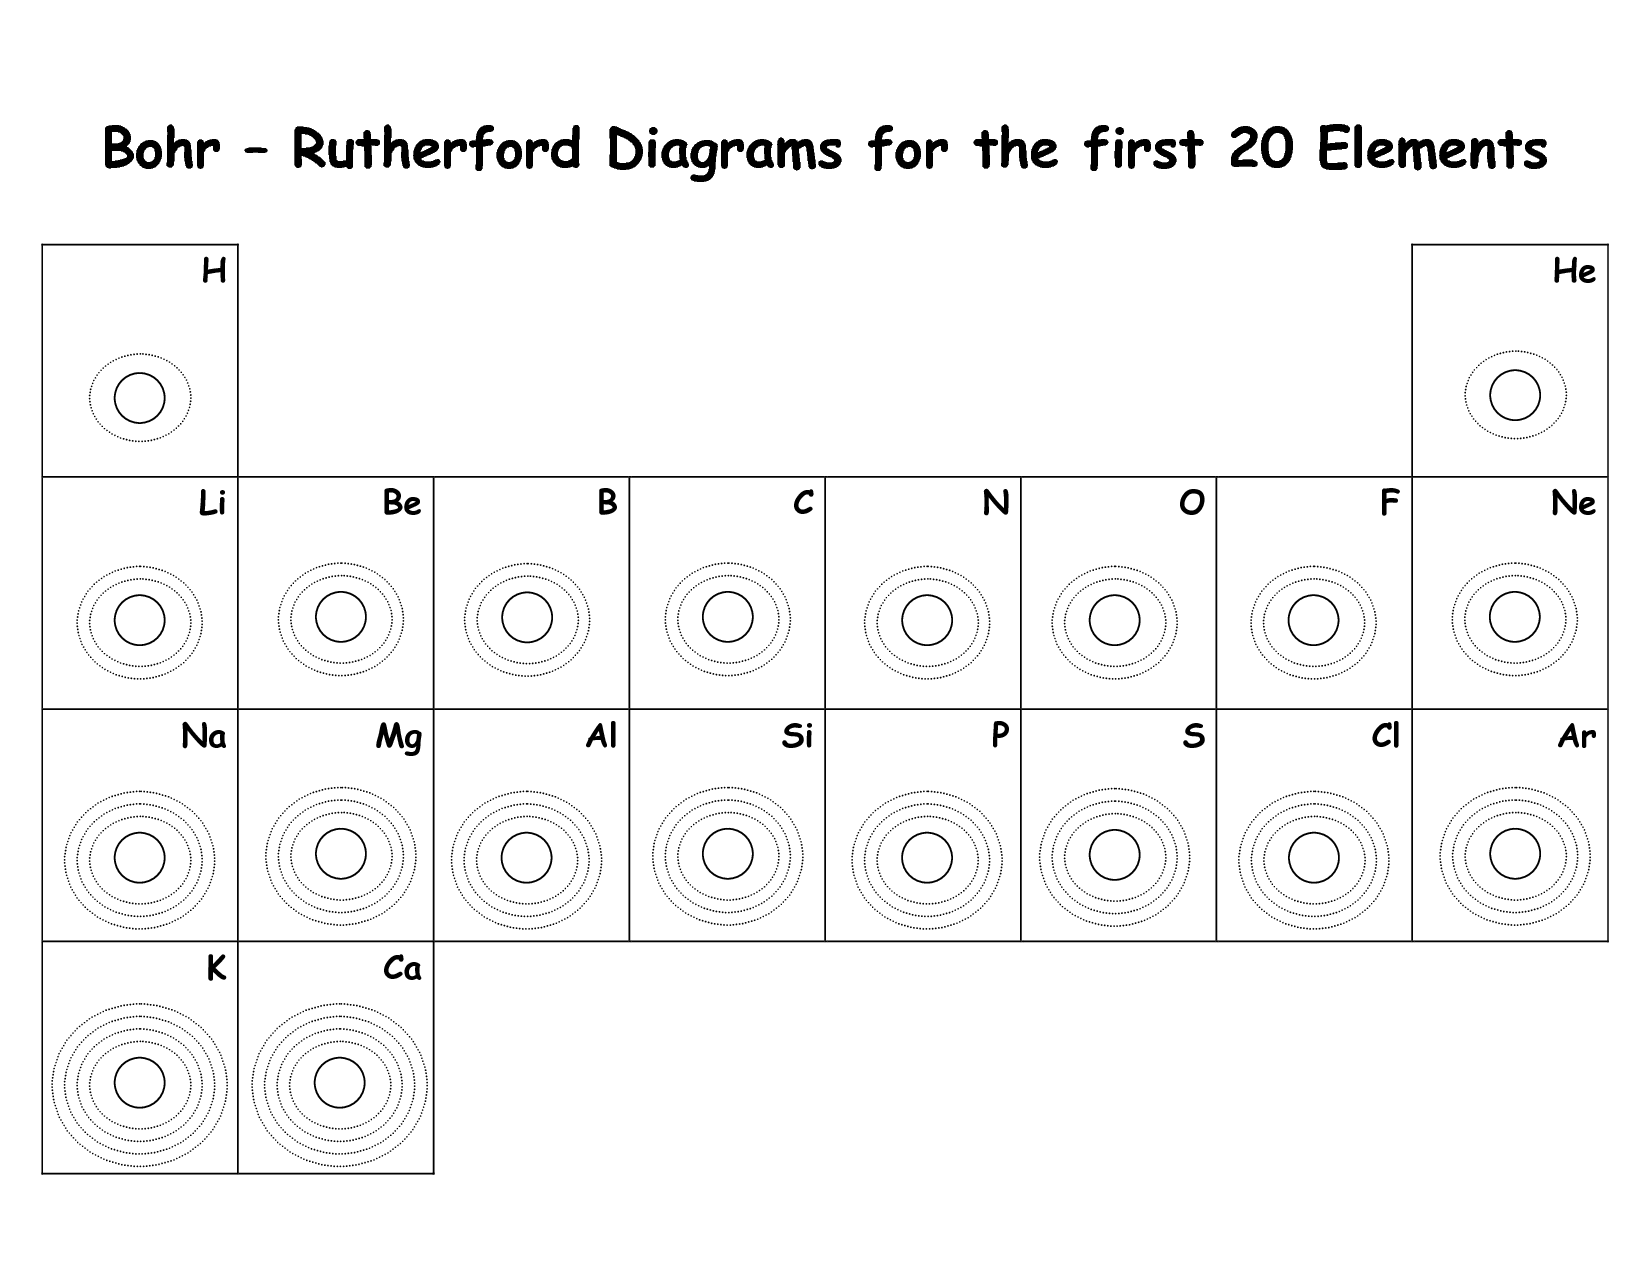 Worksheets Bohr Model Worksheet Answers blank bohr model worksheet fill in for first 20 elements elements